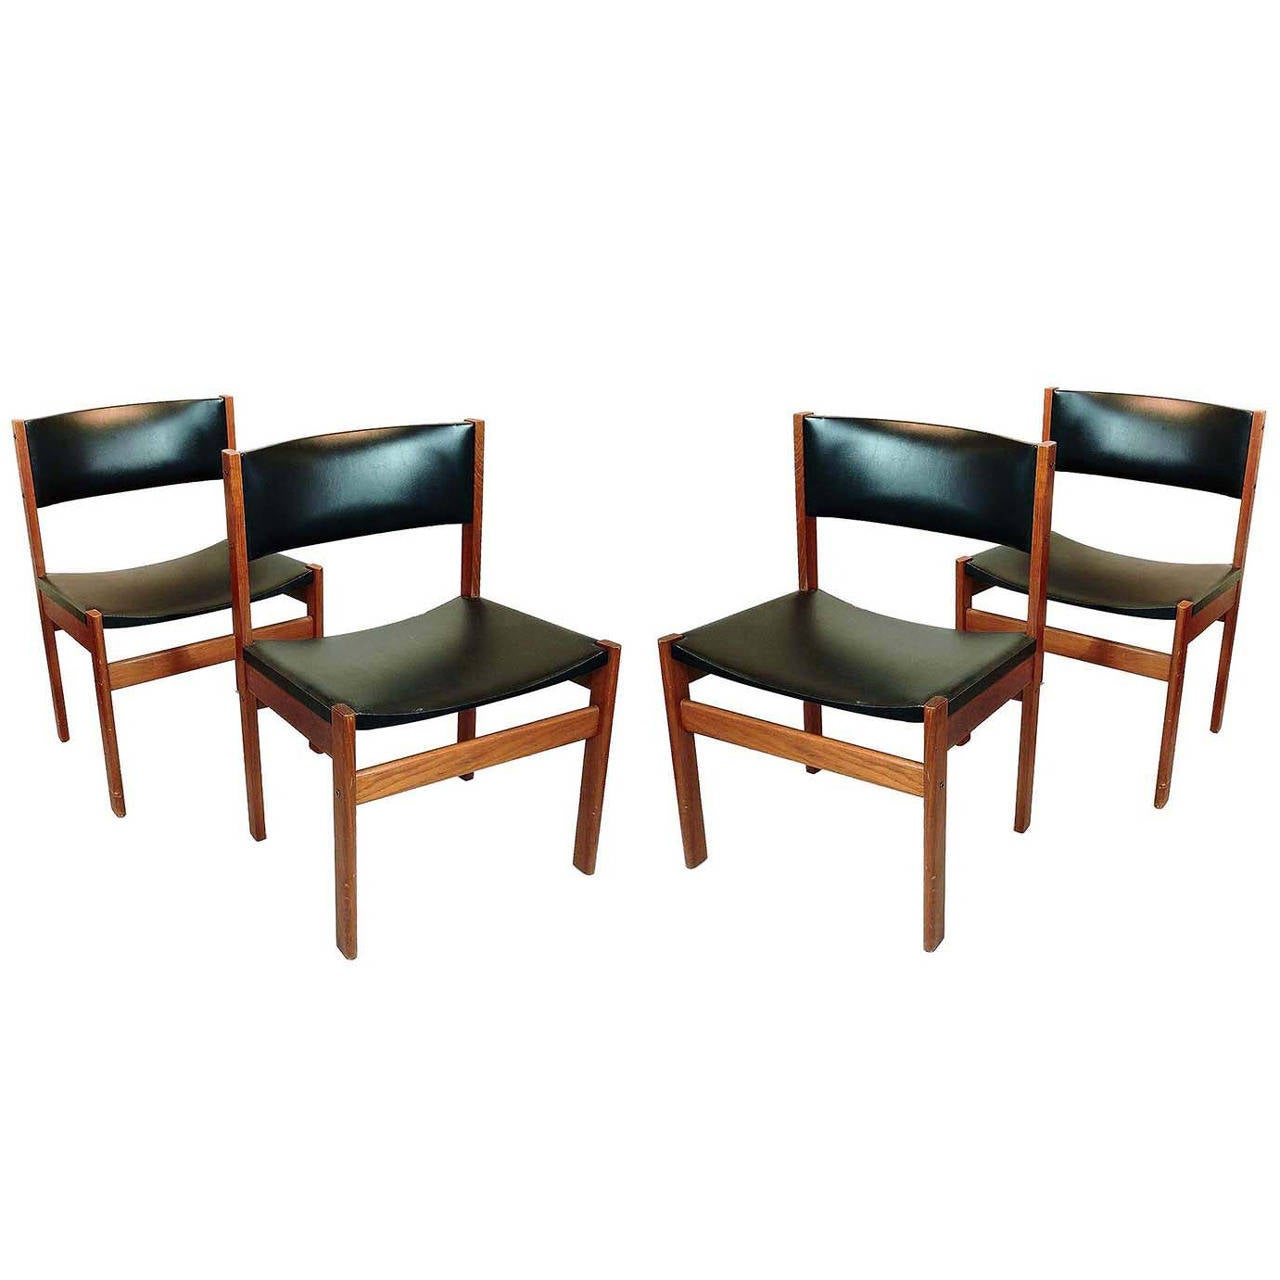 Set Of Four Danish Mid Century Modern Teak And Leather Dining Chairs For Sale At 1stdibs